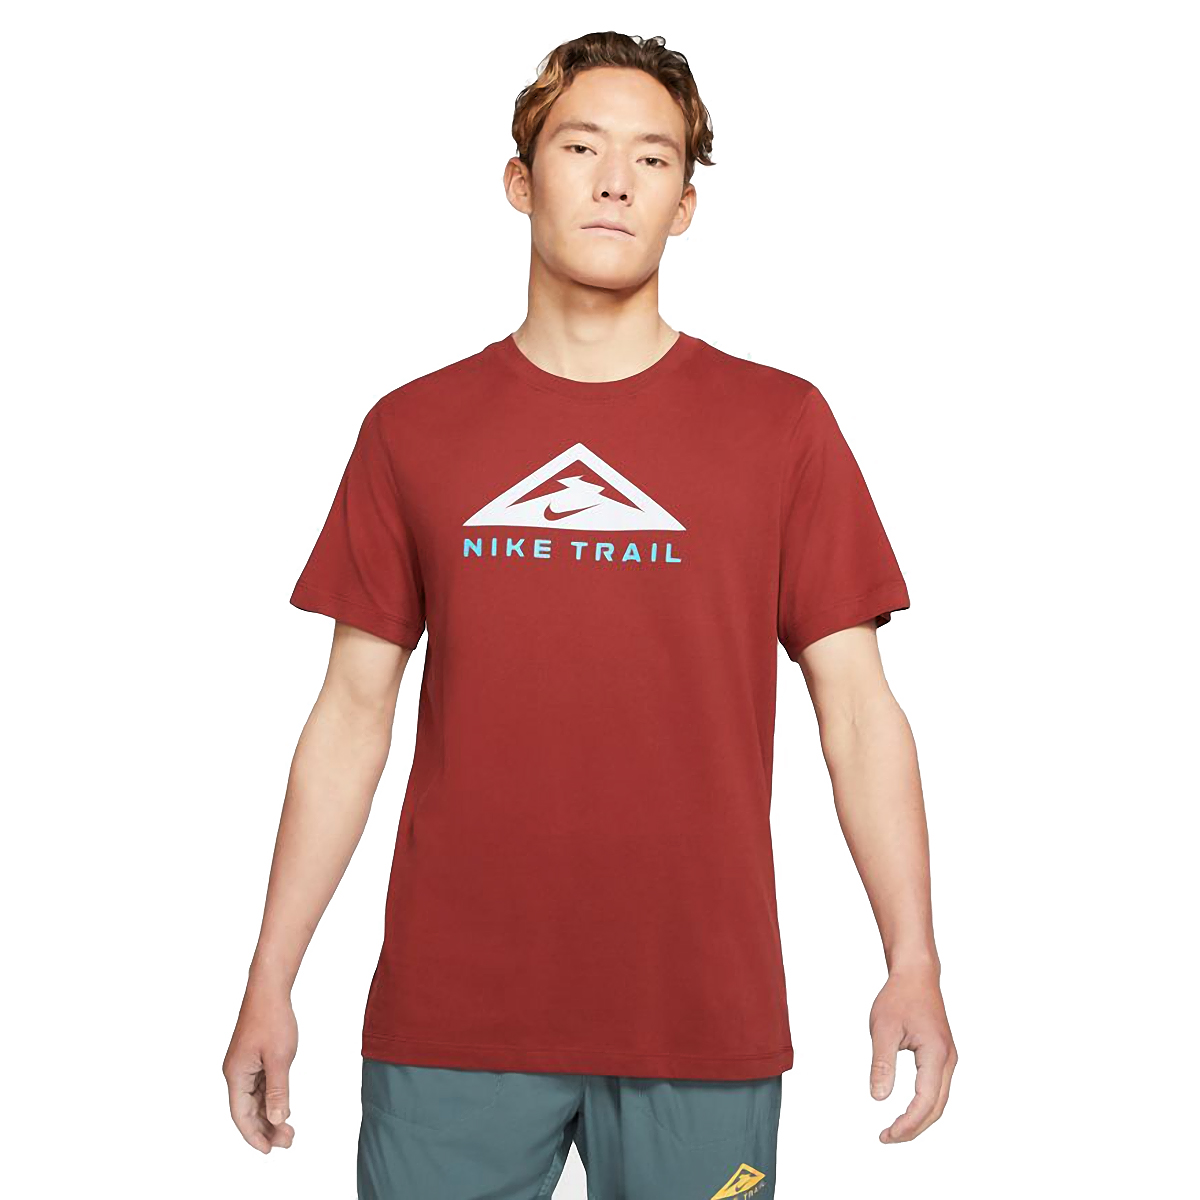 Men's Nike Dri-FIT Short-Sleeve Trail Running T-Shirt - Color: Dark Cayenne - Size: XS, Dark Cayenne, large, image 1